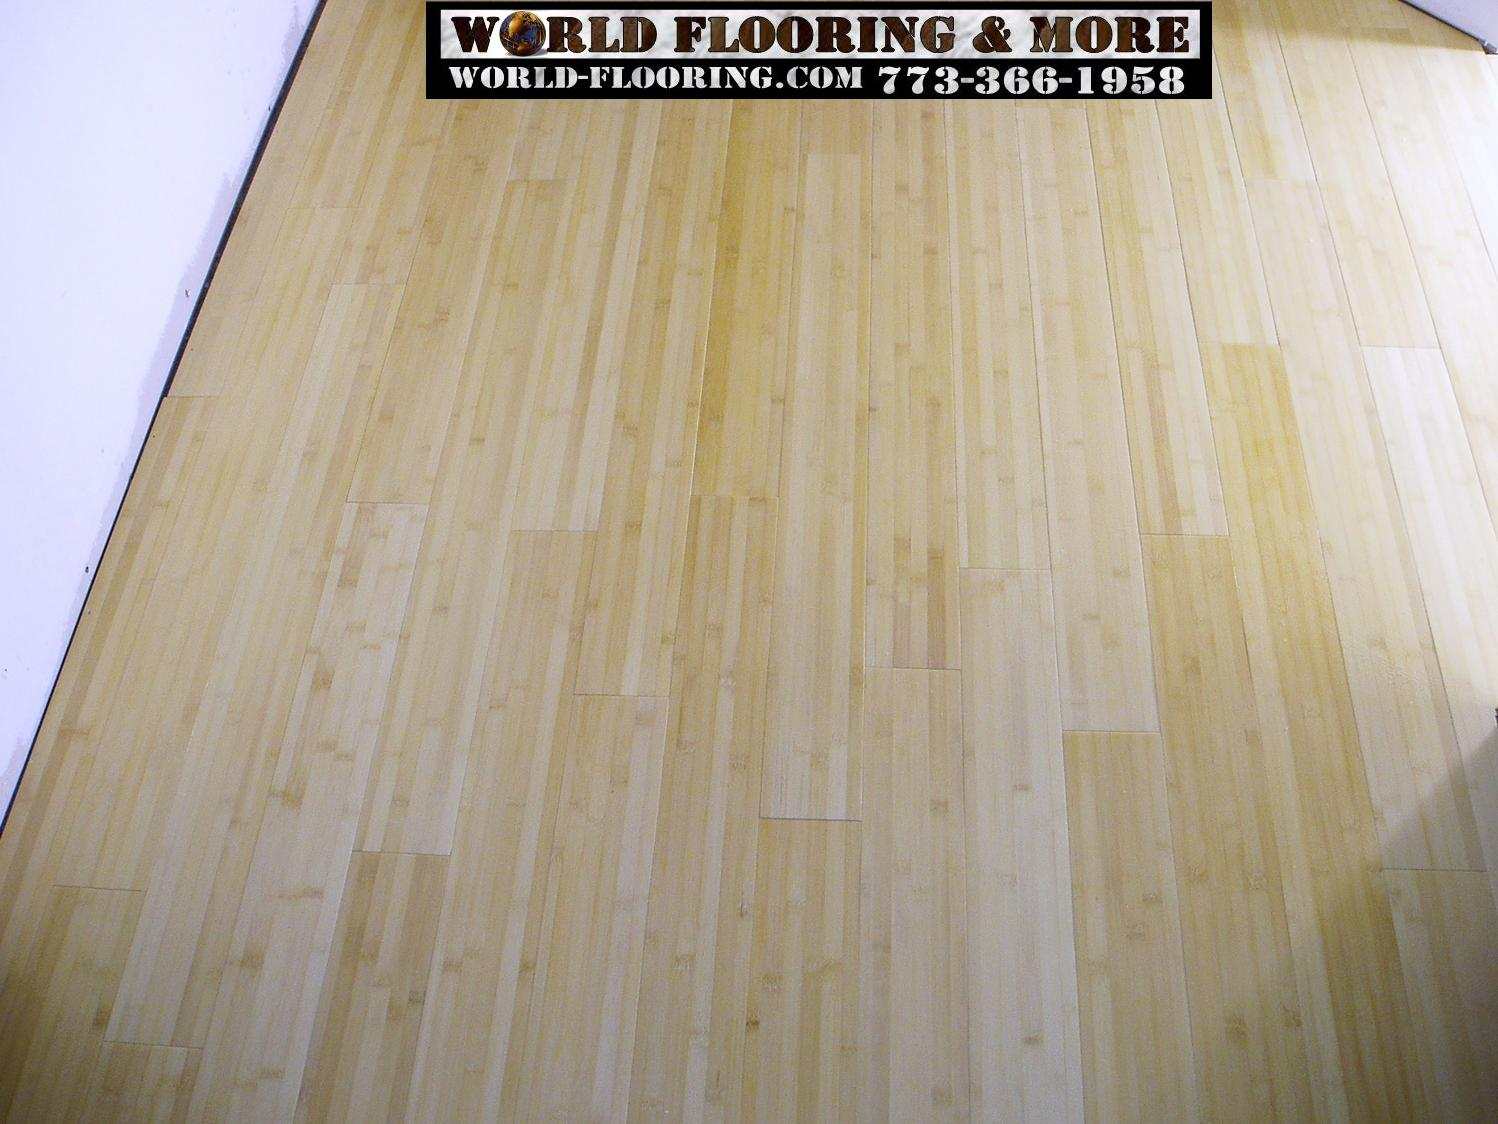 Bamboo Floor Prefinished Laminate Engineered Flooring Free Estimates Chicago